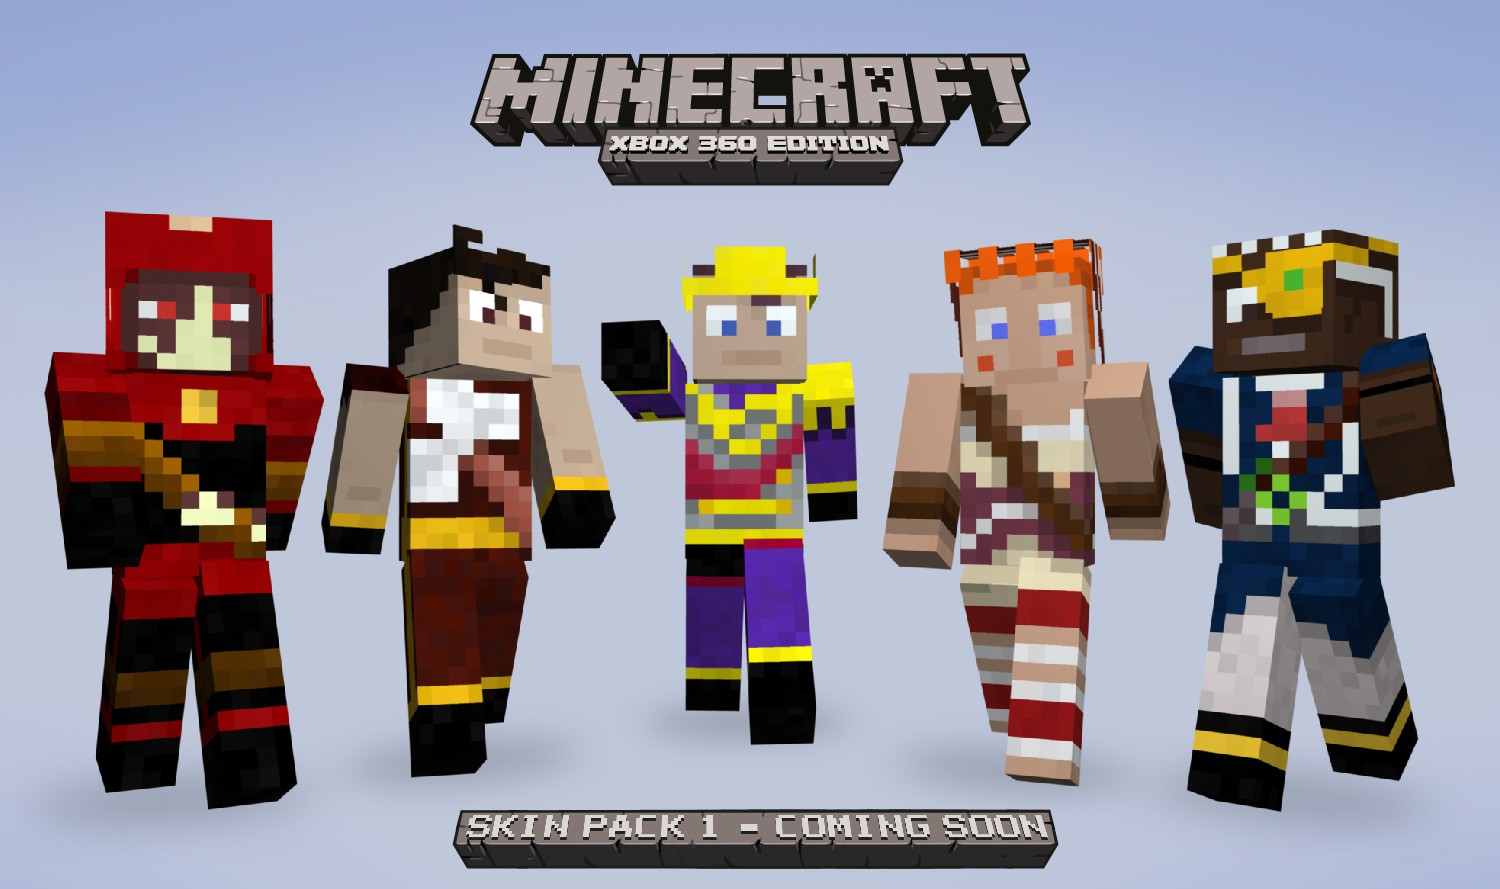 Minecraft Skin Heroes Pack HD Wallpaper Minecraft Skin Heroes Pack 1500x889